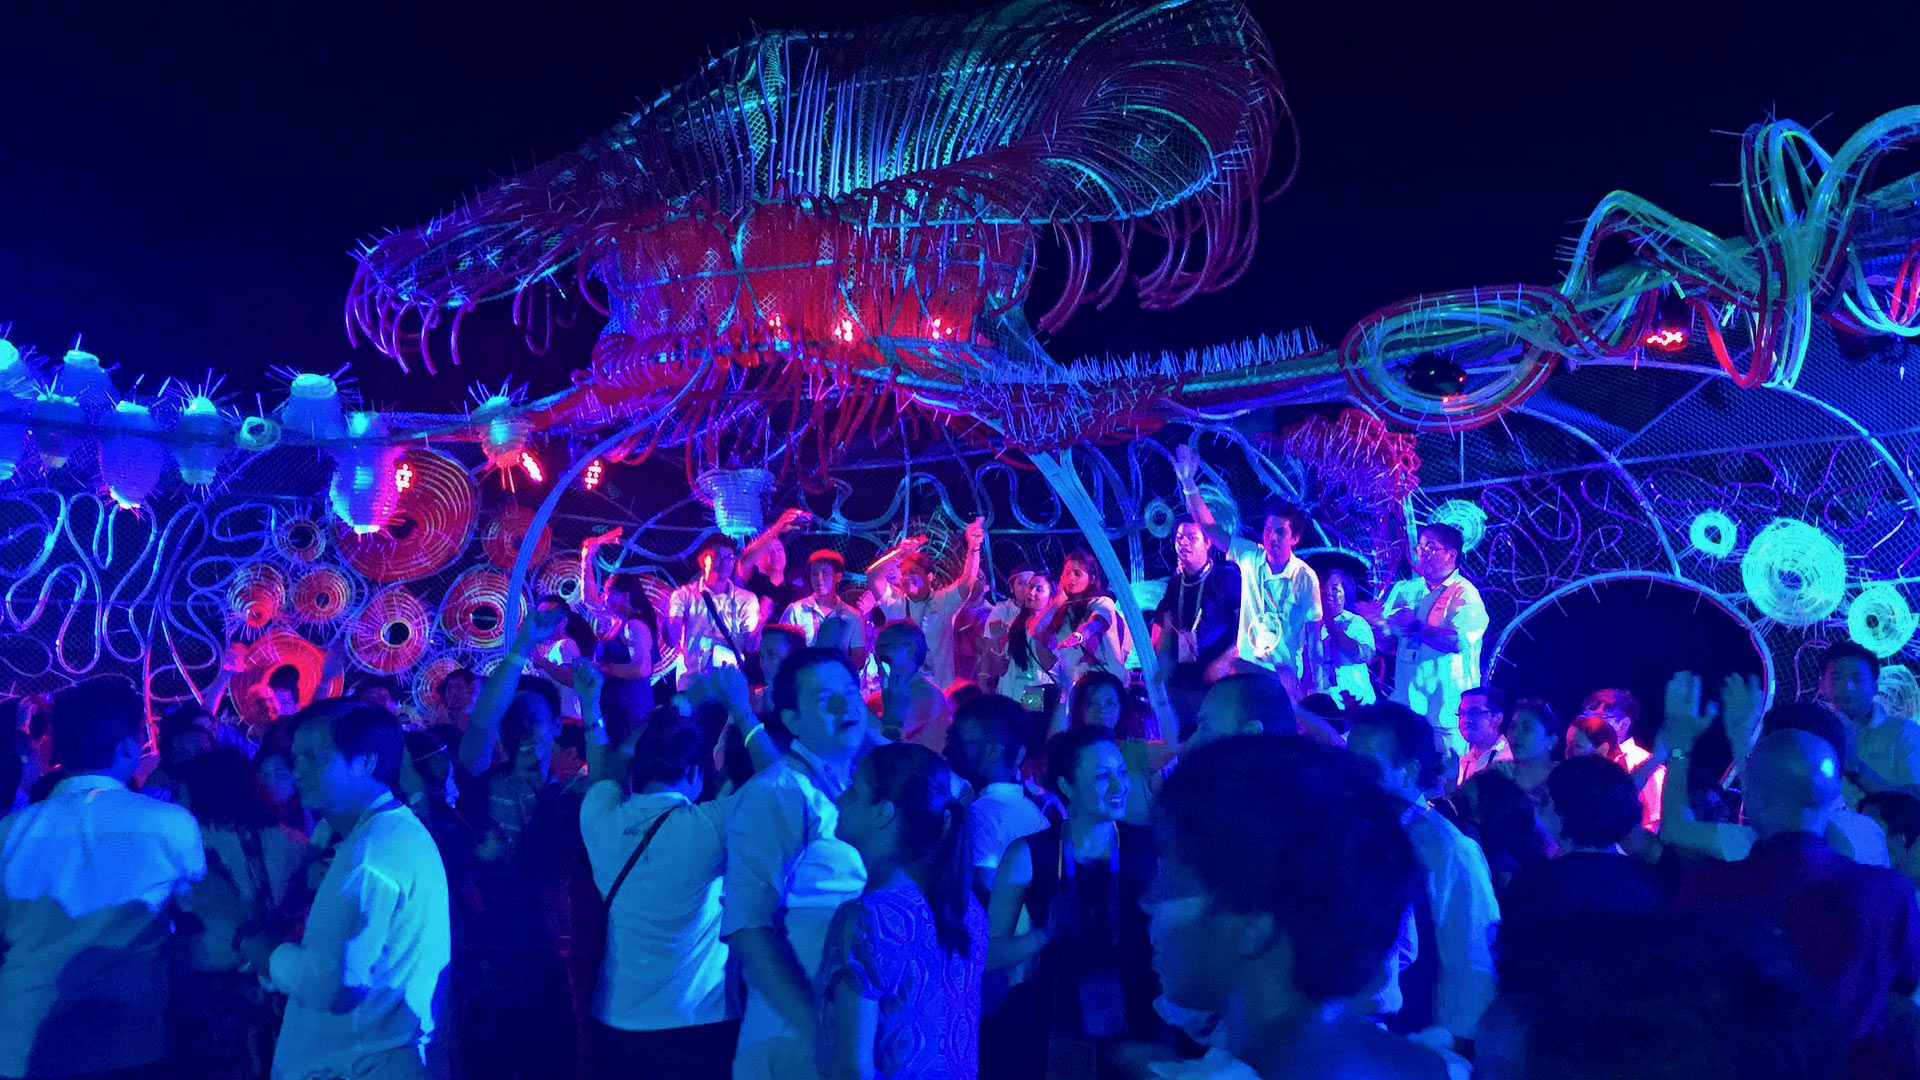 Boracay party in the Philippines, by Seal Superyachts.